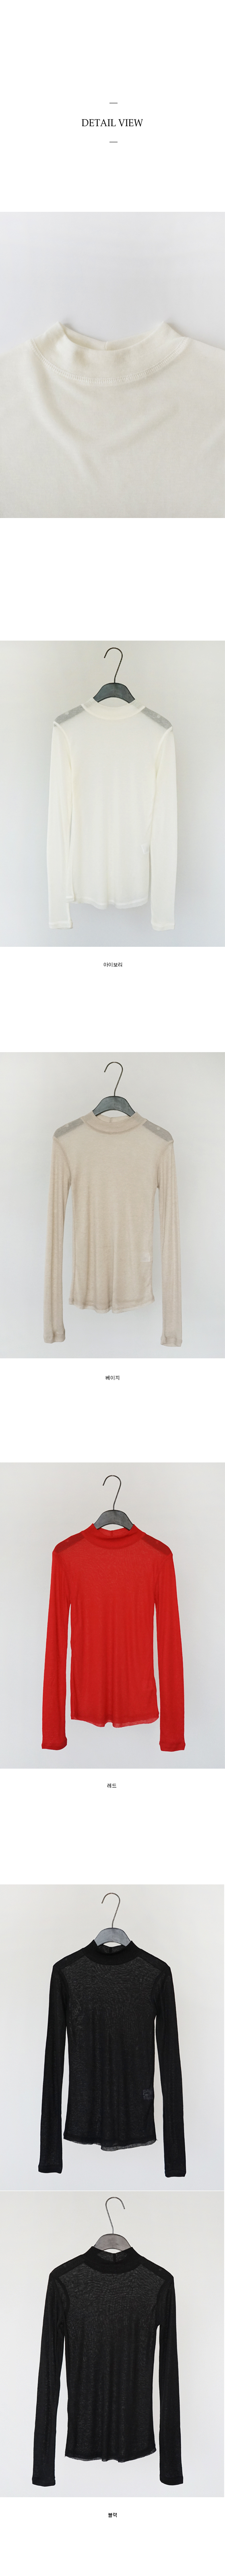 soft mock neck tee (4colors)